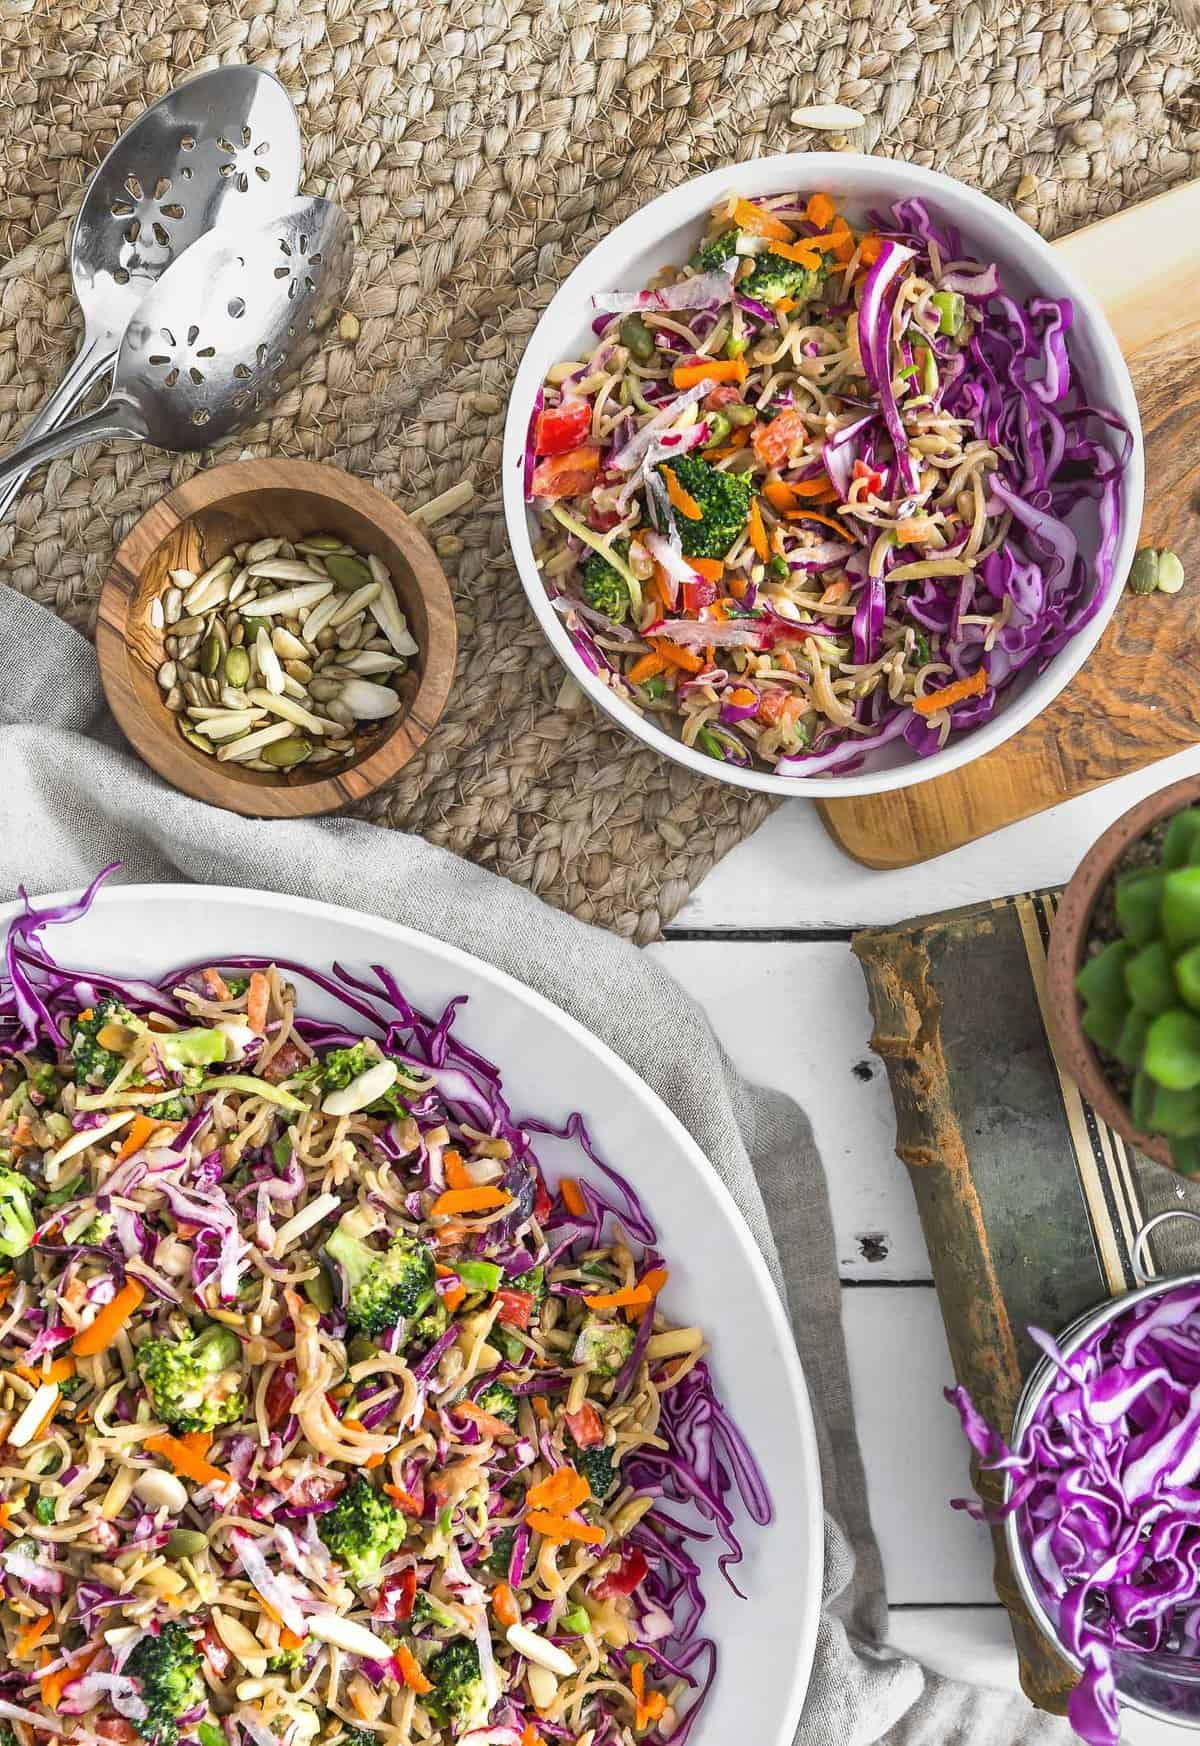 No Oil Broccoli Noodle Slaw, vegan salad, vegan slaw, vegan dinner, broccoli slaw, noodles, vegan noodles, plant based, vegan, vegetarian, whole food plant based, gluten free, recipe, wfpb, healthy, healthy vegan, oil free, no refined sugar, no oil, refined sugar free, dairy free, vegan dressing, vegan lunch, salad, dinner, lunch, easy recipe, dressing, broccoli, summer, picnic, party, entertaining